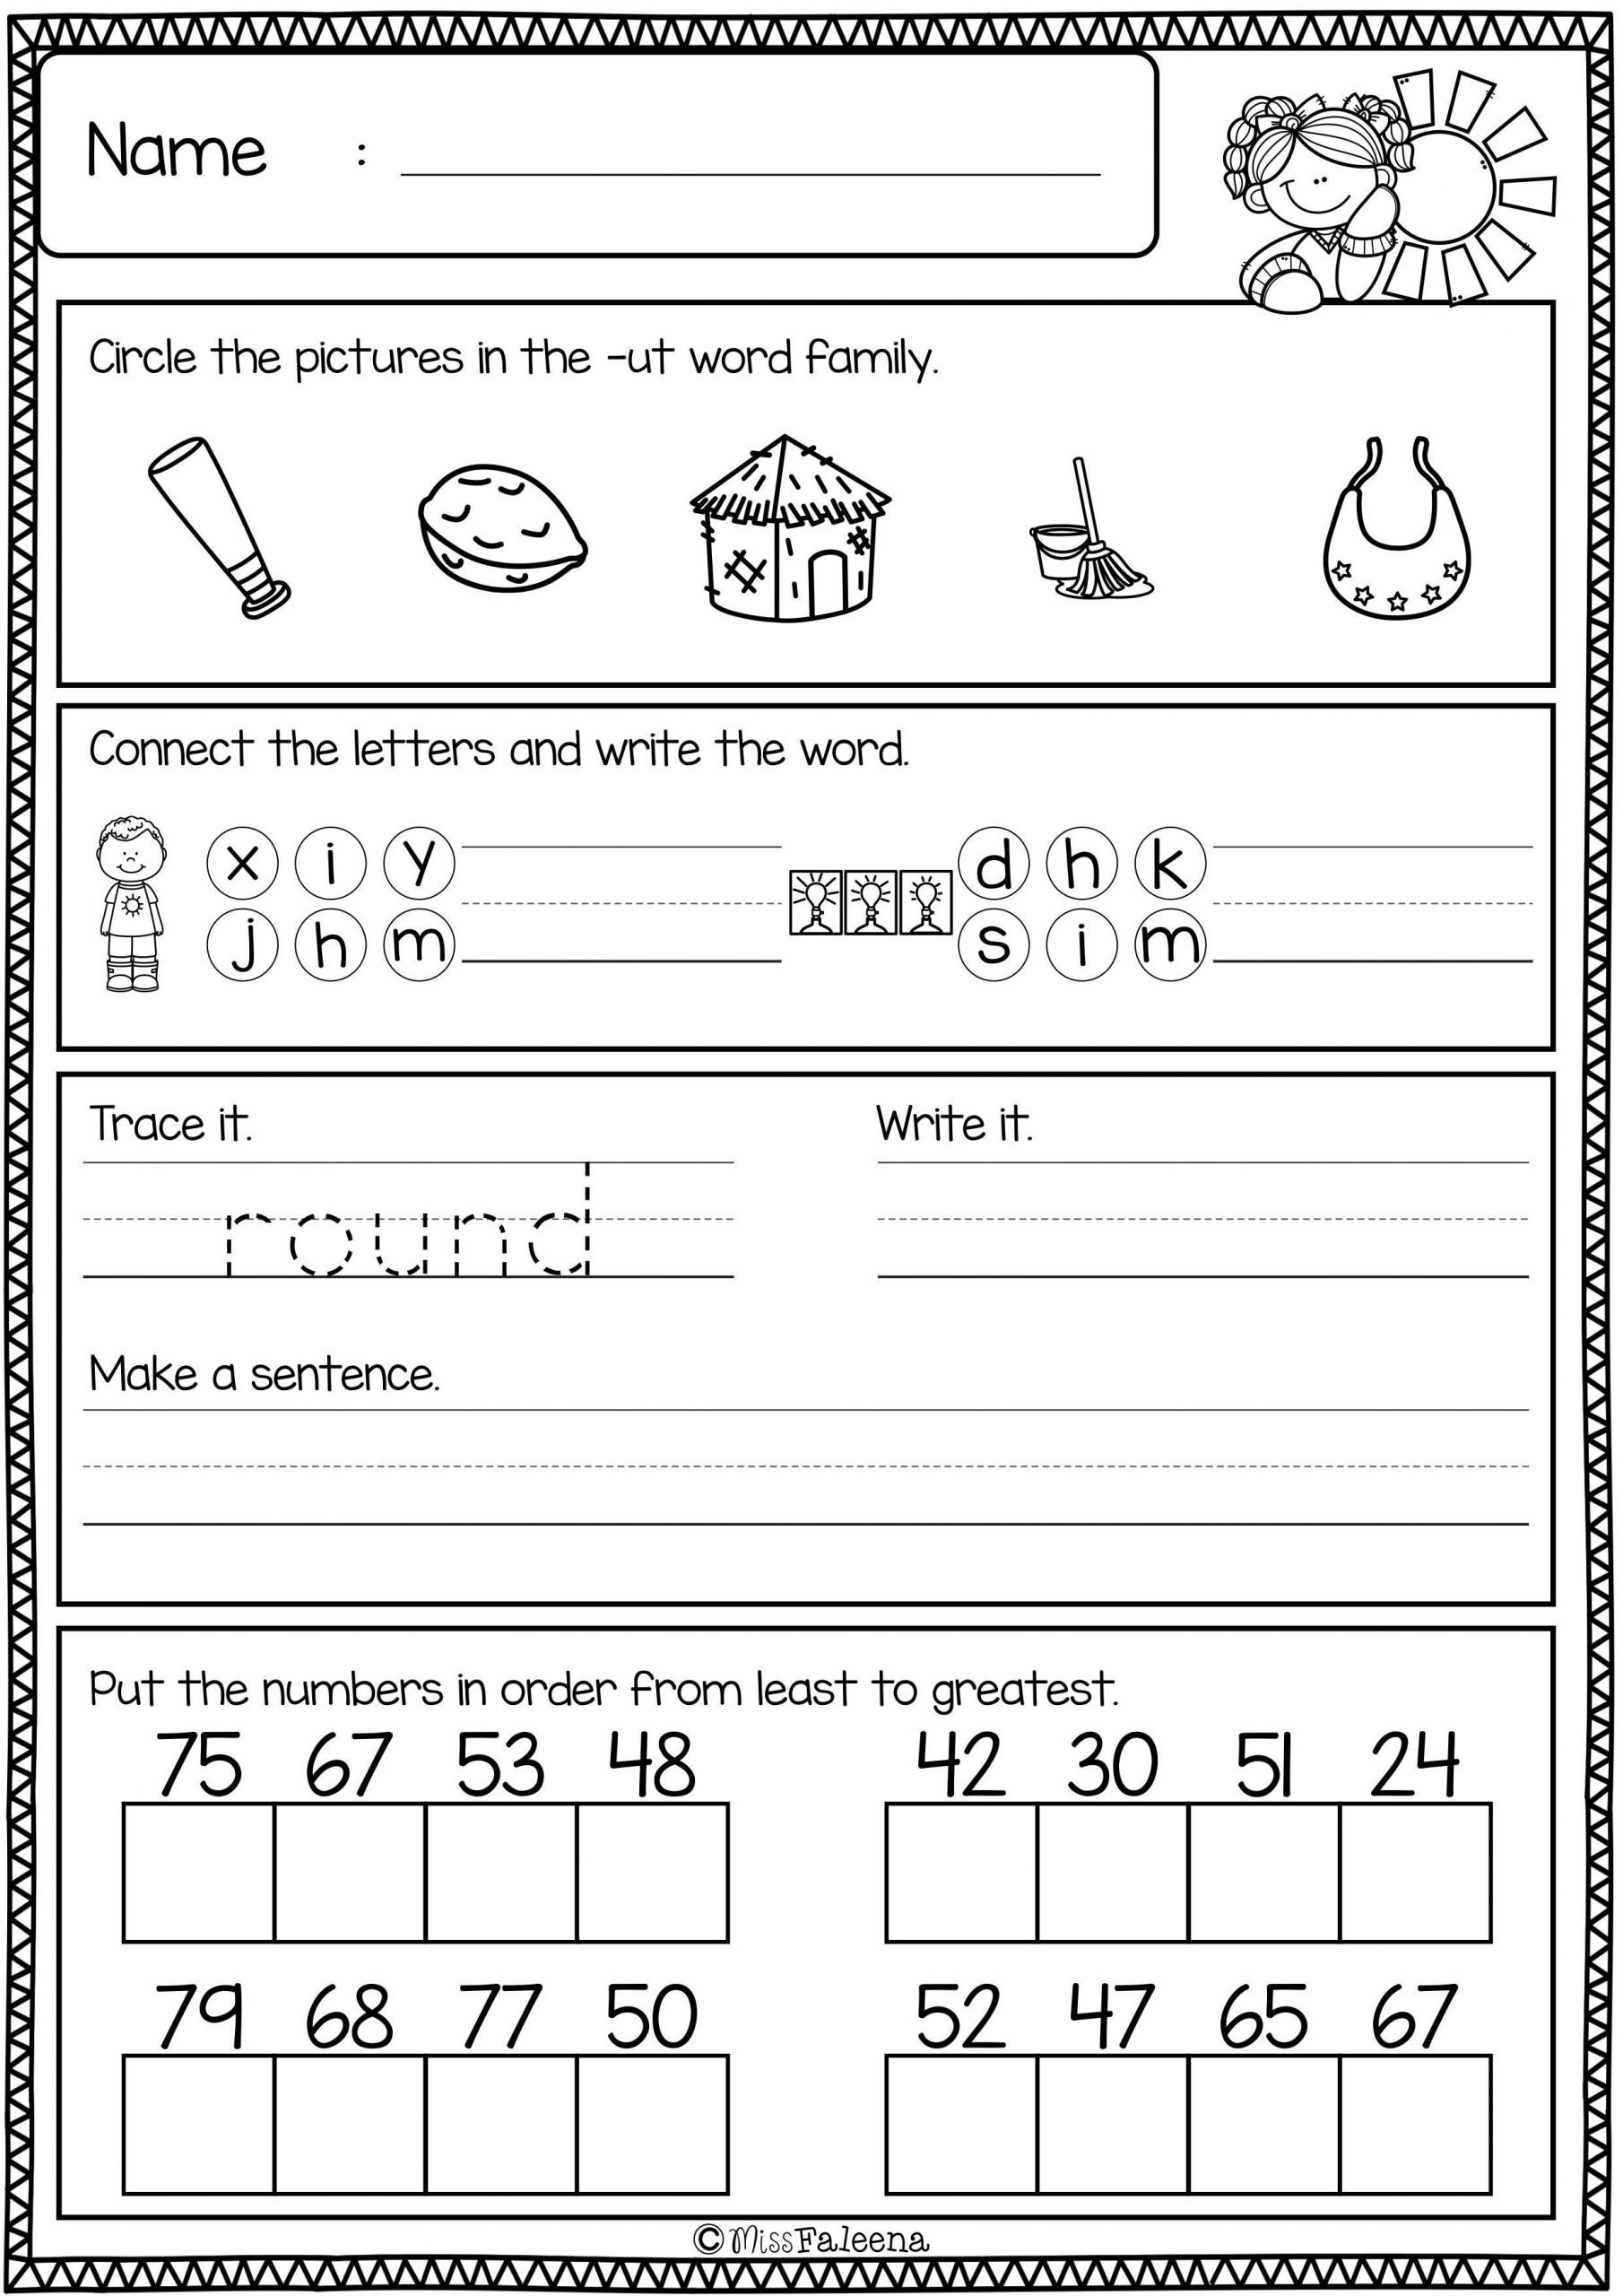 Morning Worksheets for Kindergarten First Grade Morning Work Set 2 Includes 60 Pages Of Morning